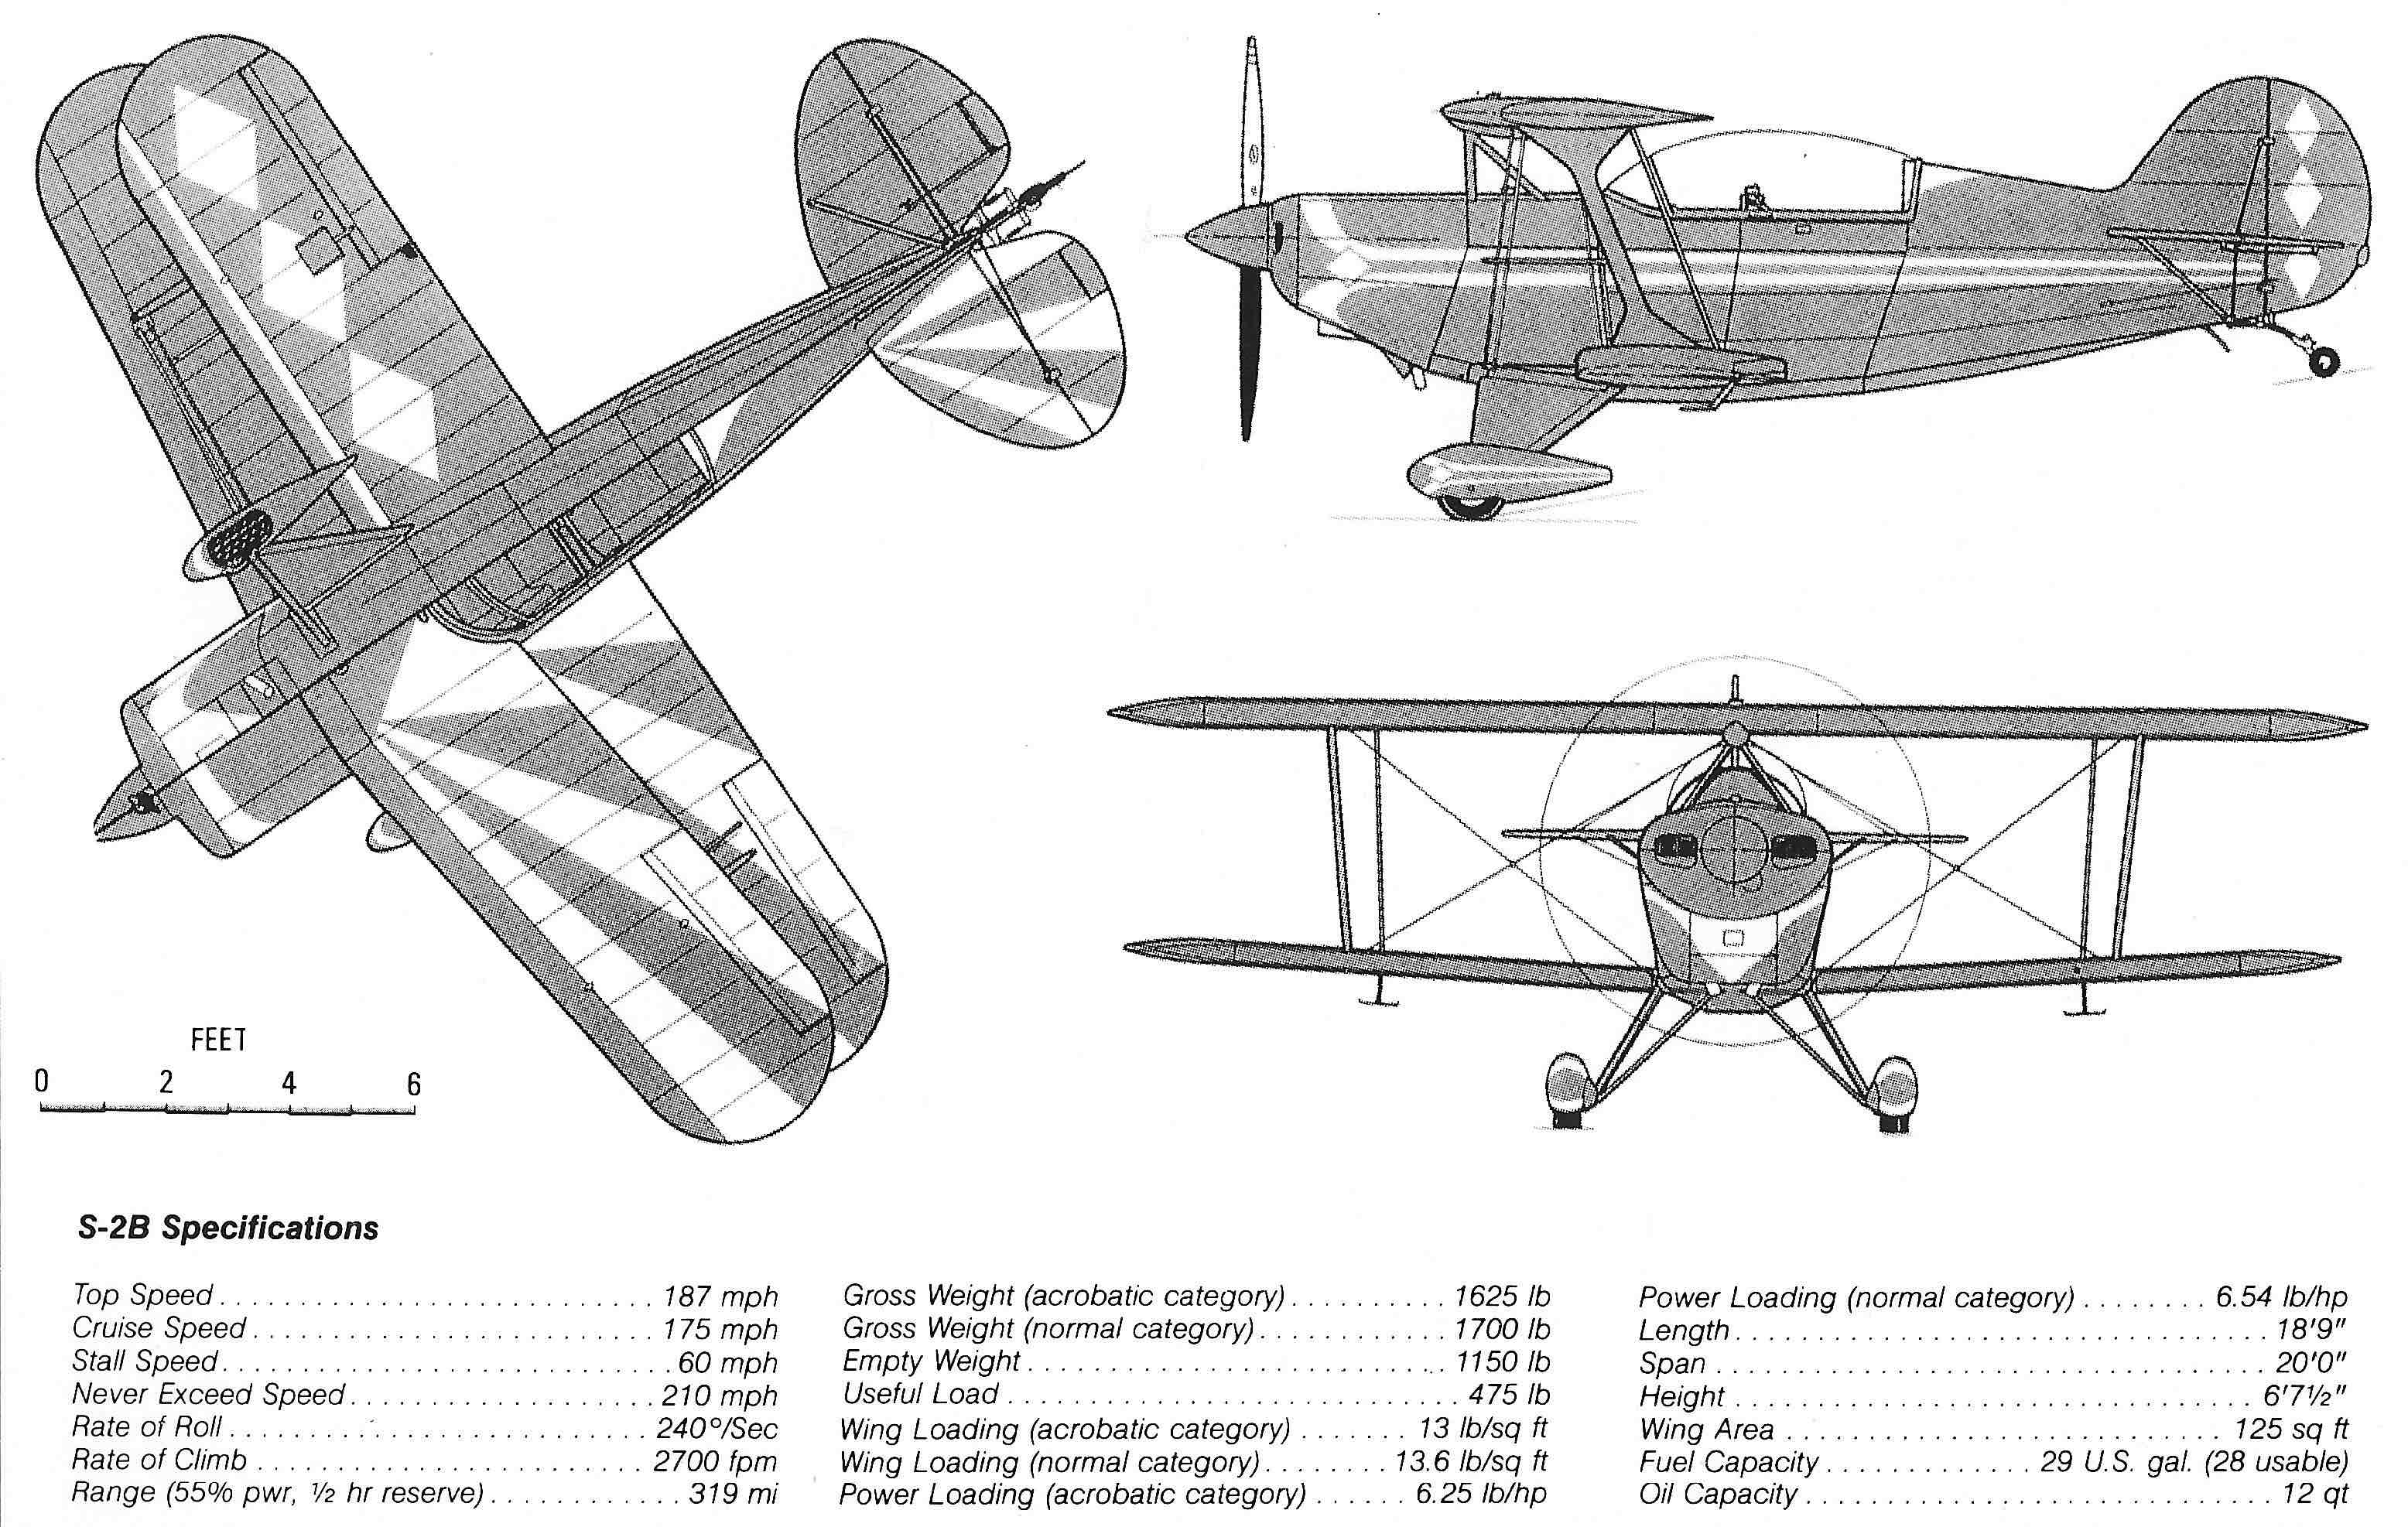 Pitts_S-2B